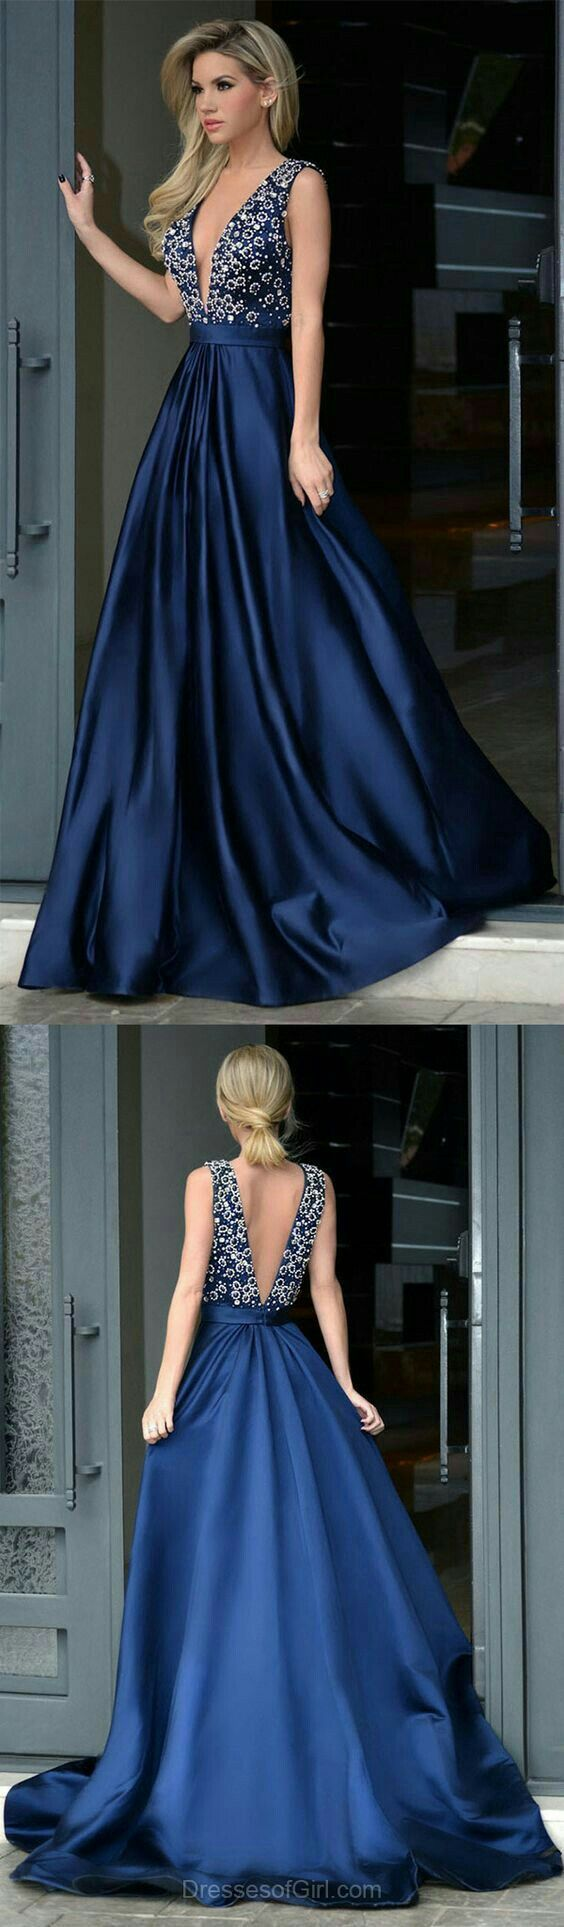 Pin by hannah thompson on fancy clothes pinterest prom dresses